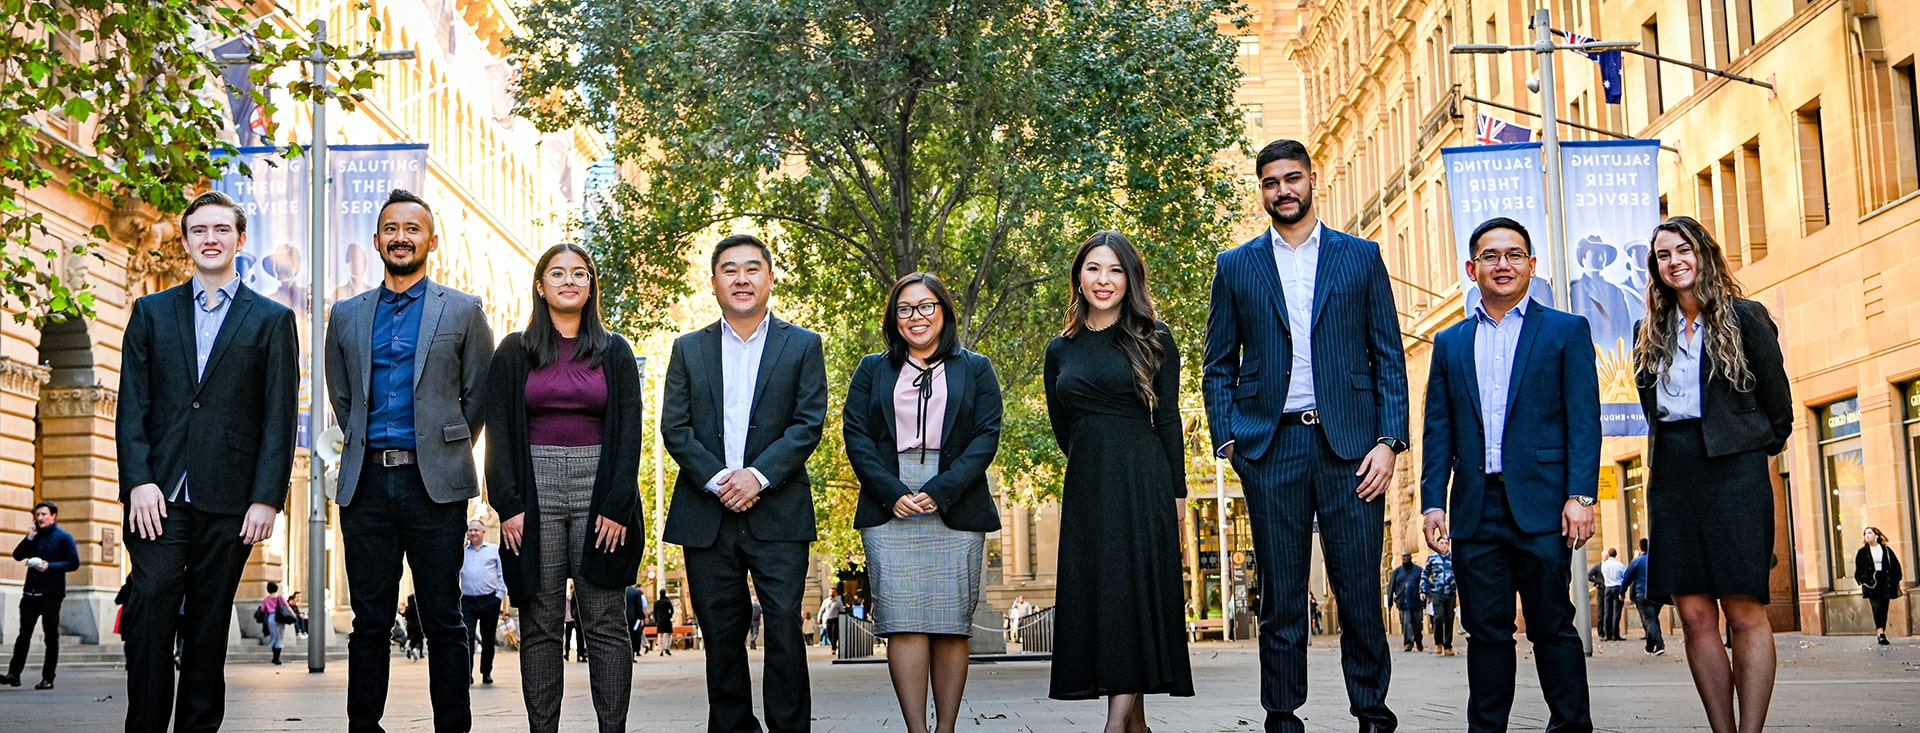 Photo of the new Gilton Valeo team standing in Martin Place